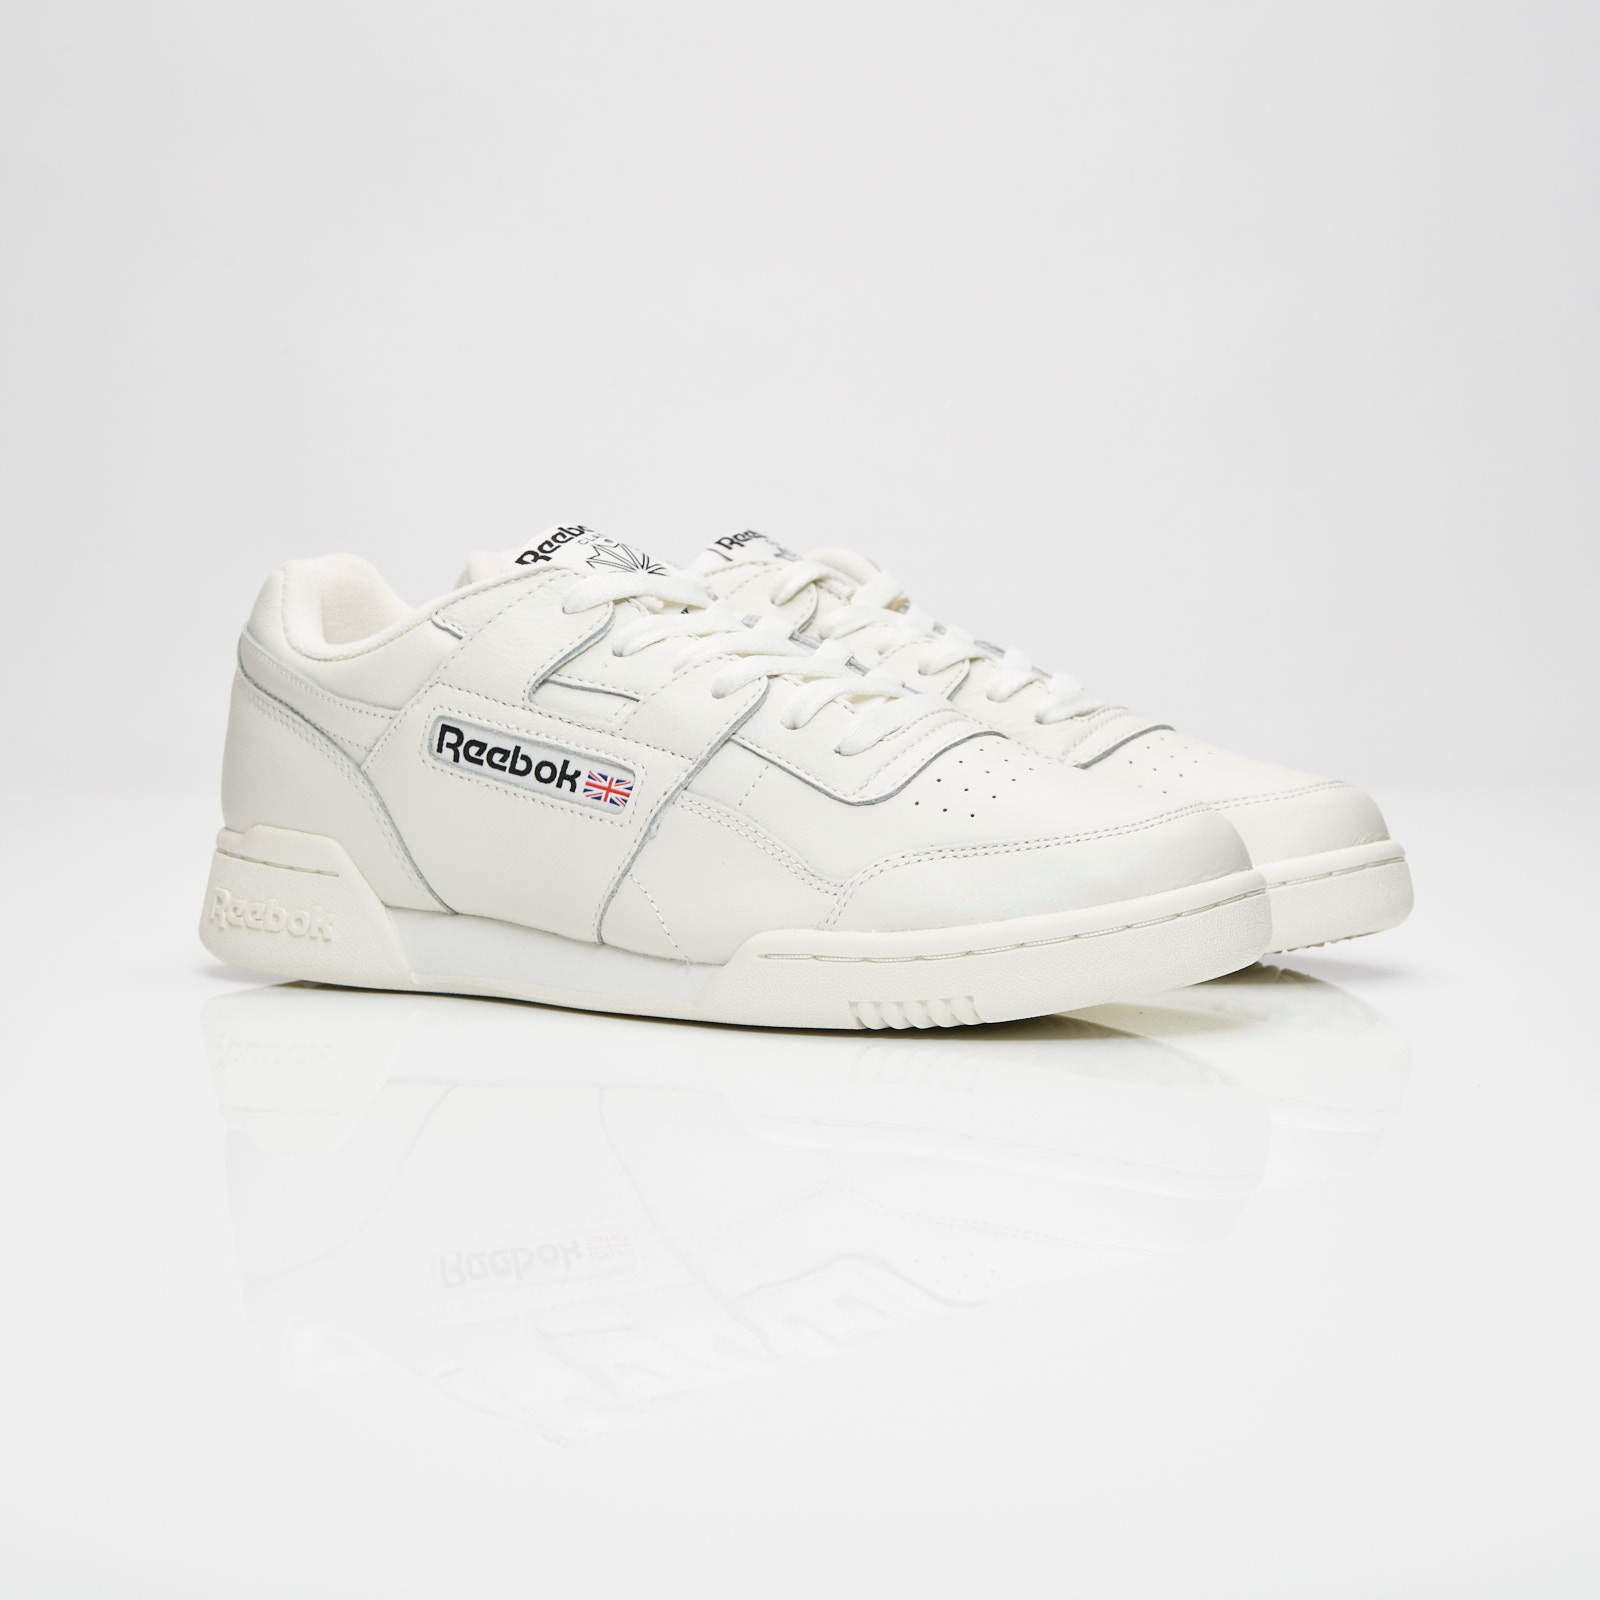 878b78ce07d1 Reebok Workout Plus MU - Cn4966 - Sneakersnstuff